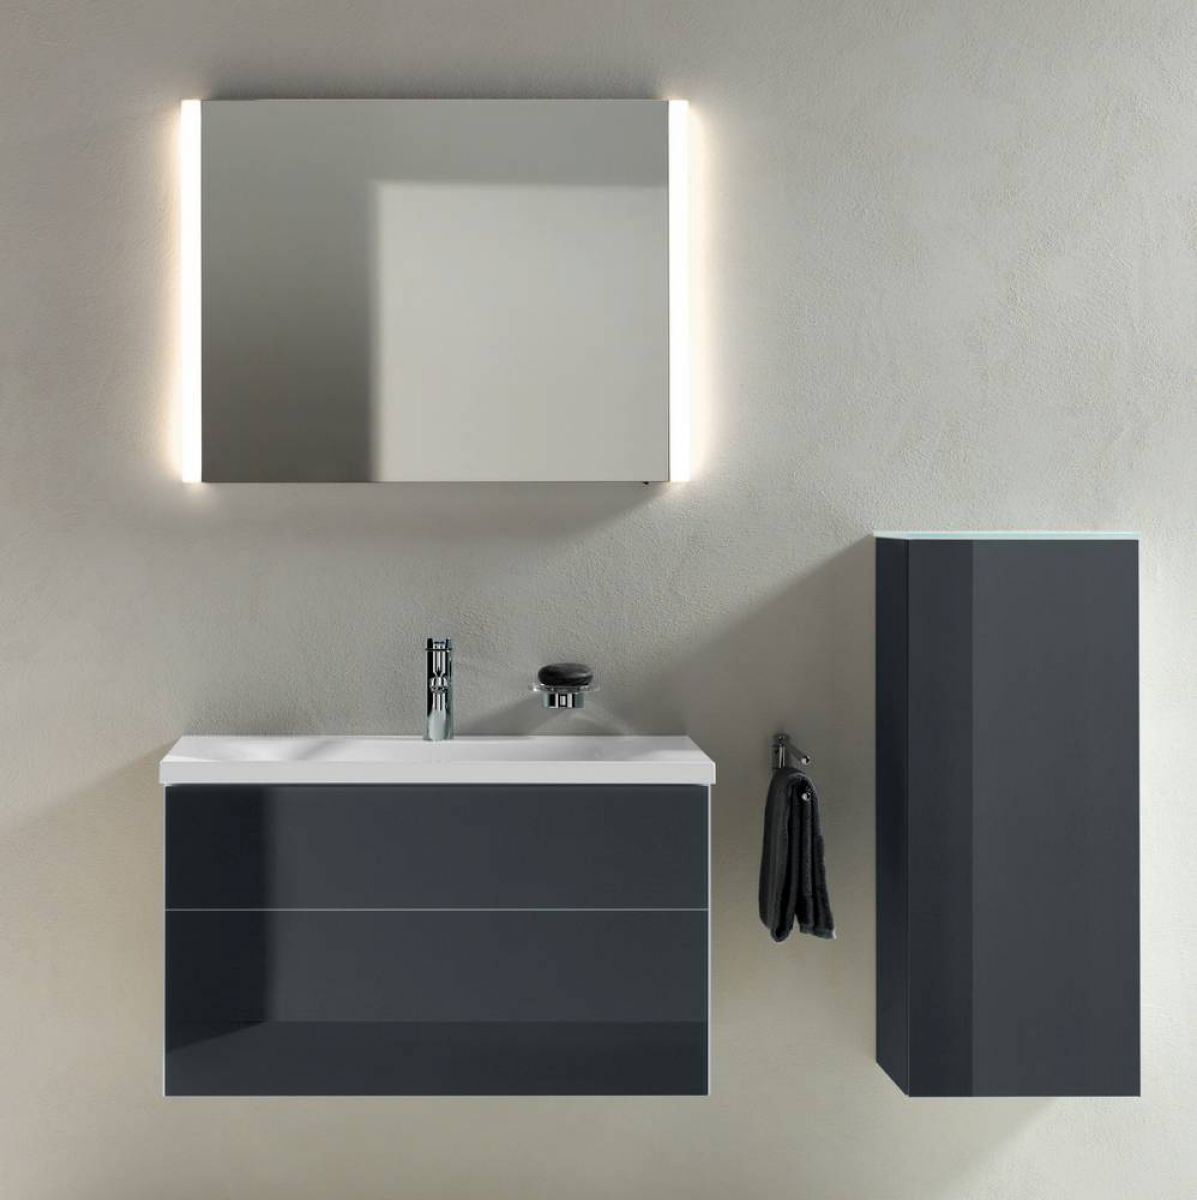 Bathroom Cabinets Keuco keuco bathroom furniture royal reflex - bathroom design